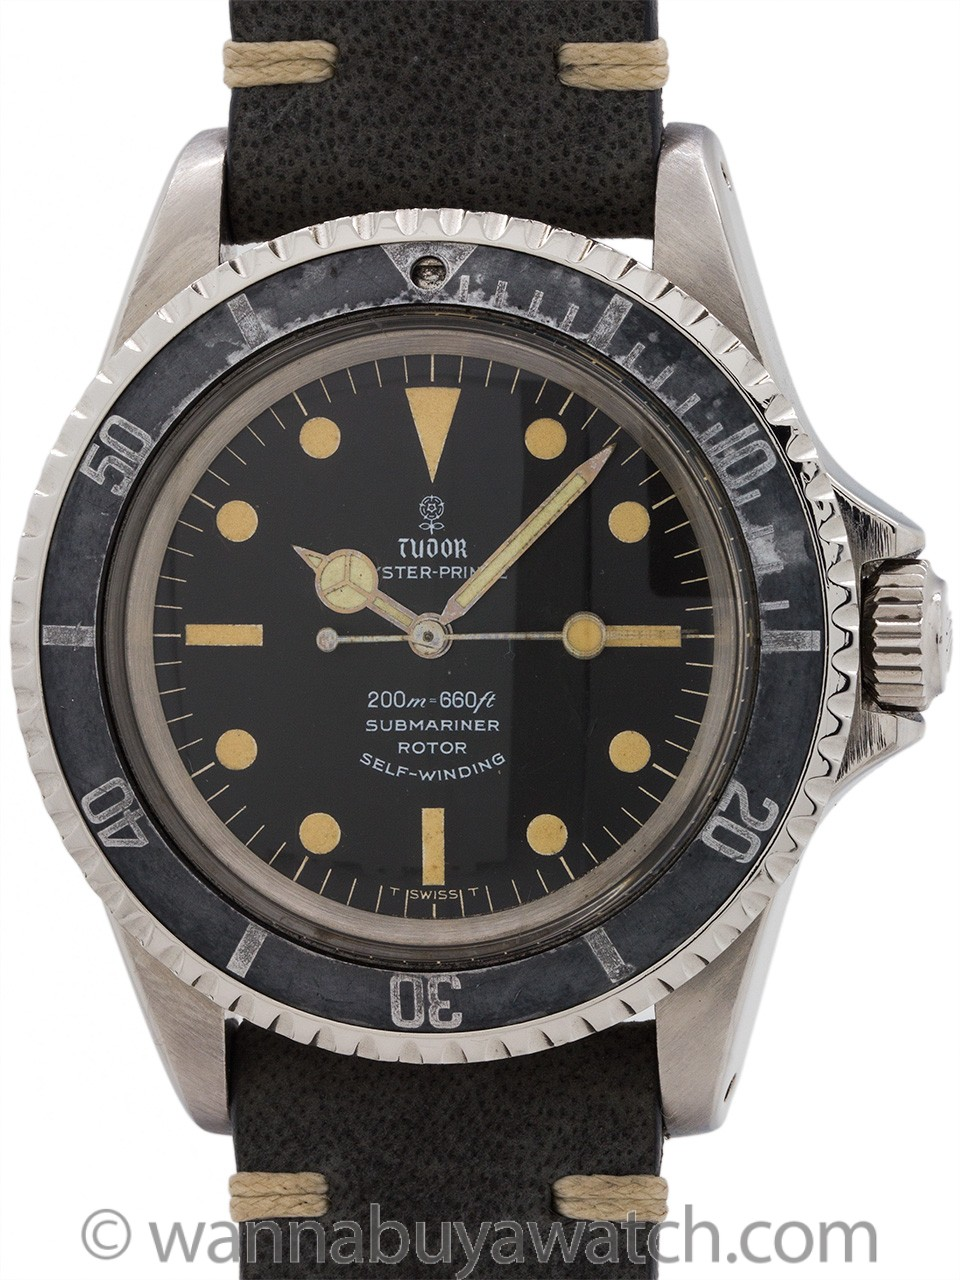 Tudor ref 7928 Submariner Gilt Flower Logo Dial circa 1966